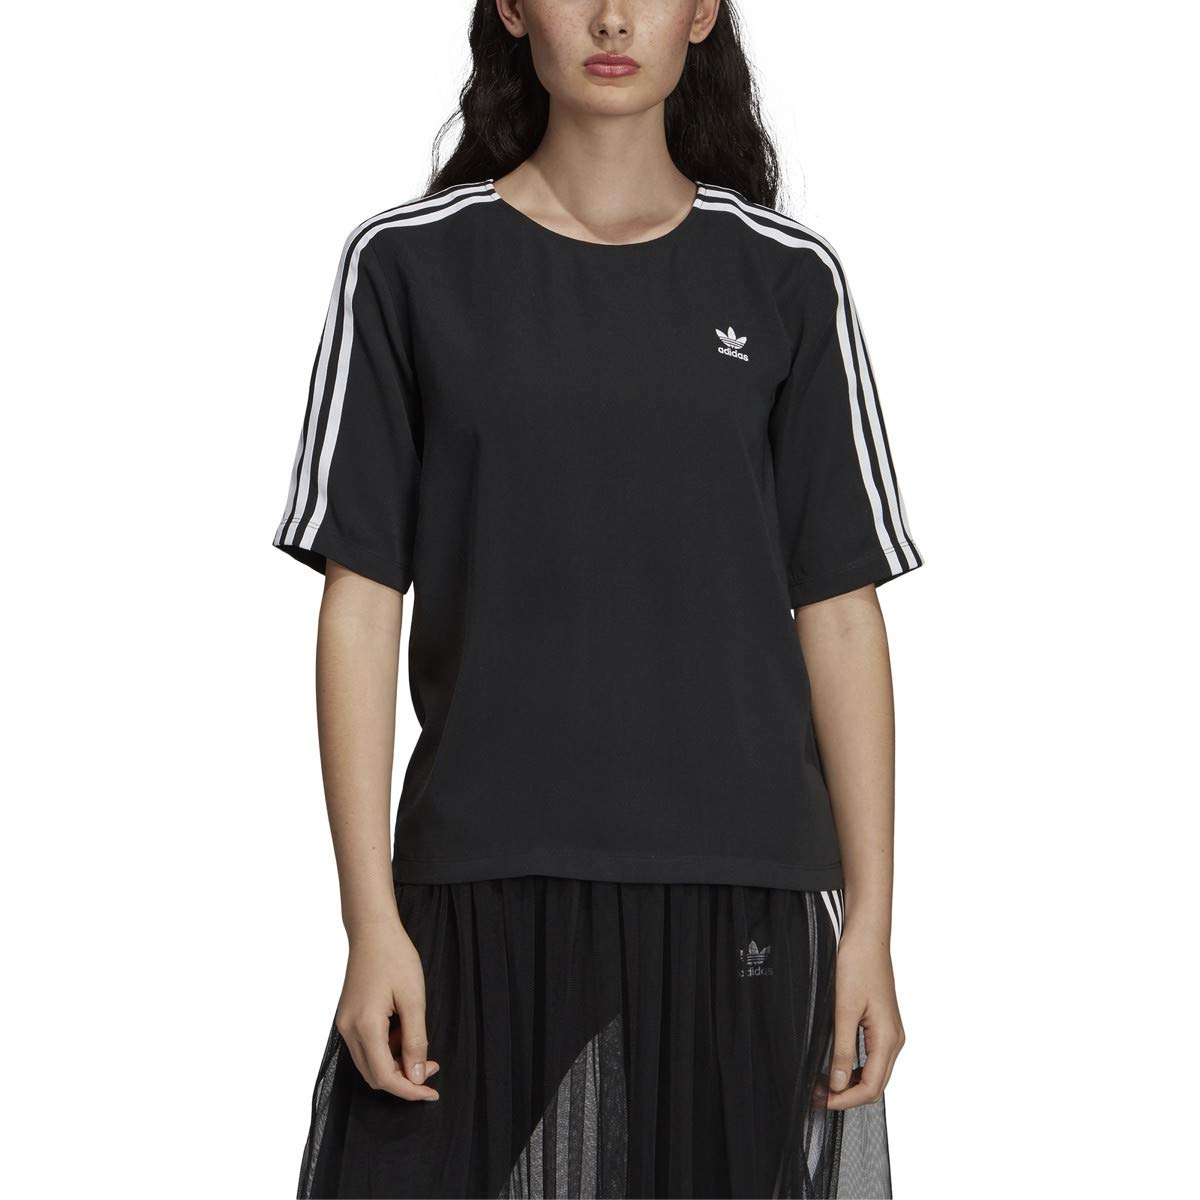 adidas Originals Women's 3 Stripes Tee Black 1 Medium